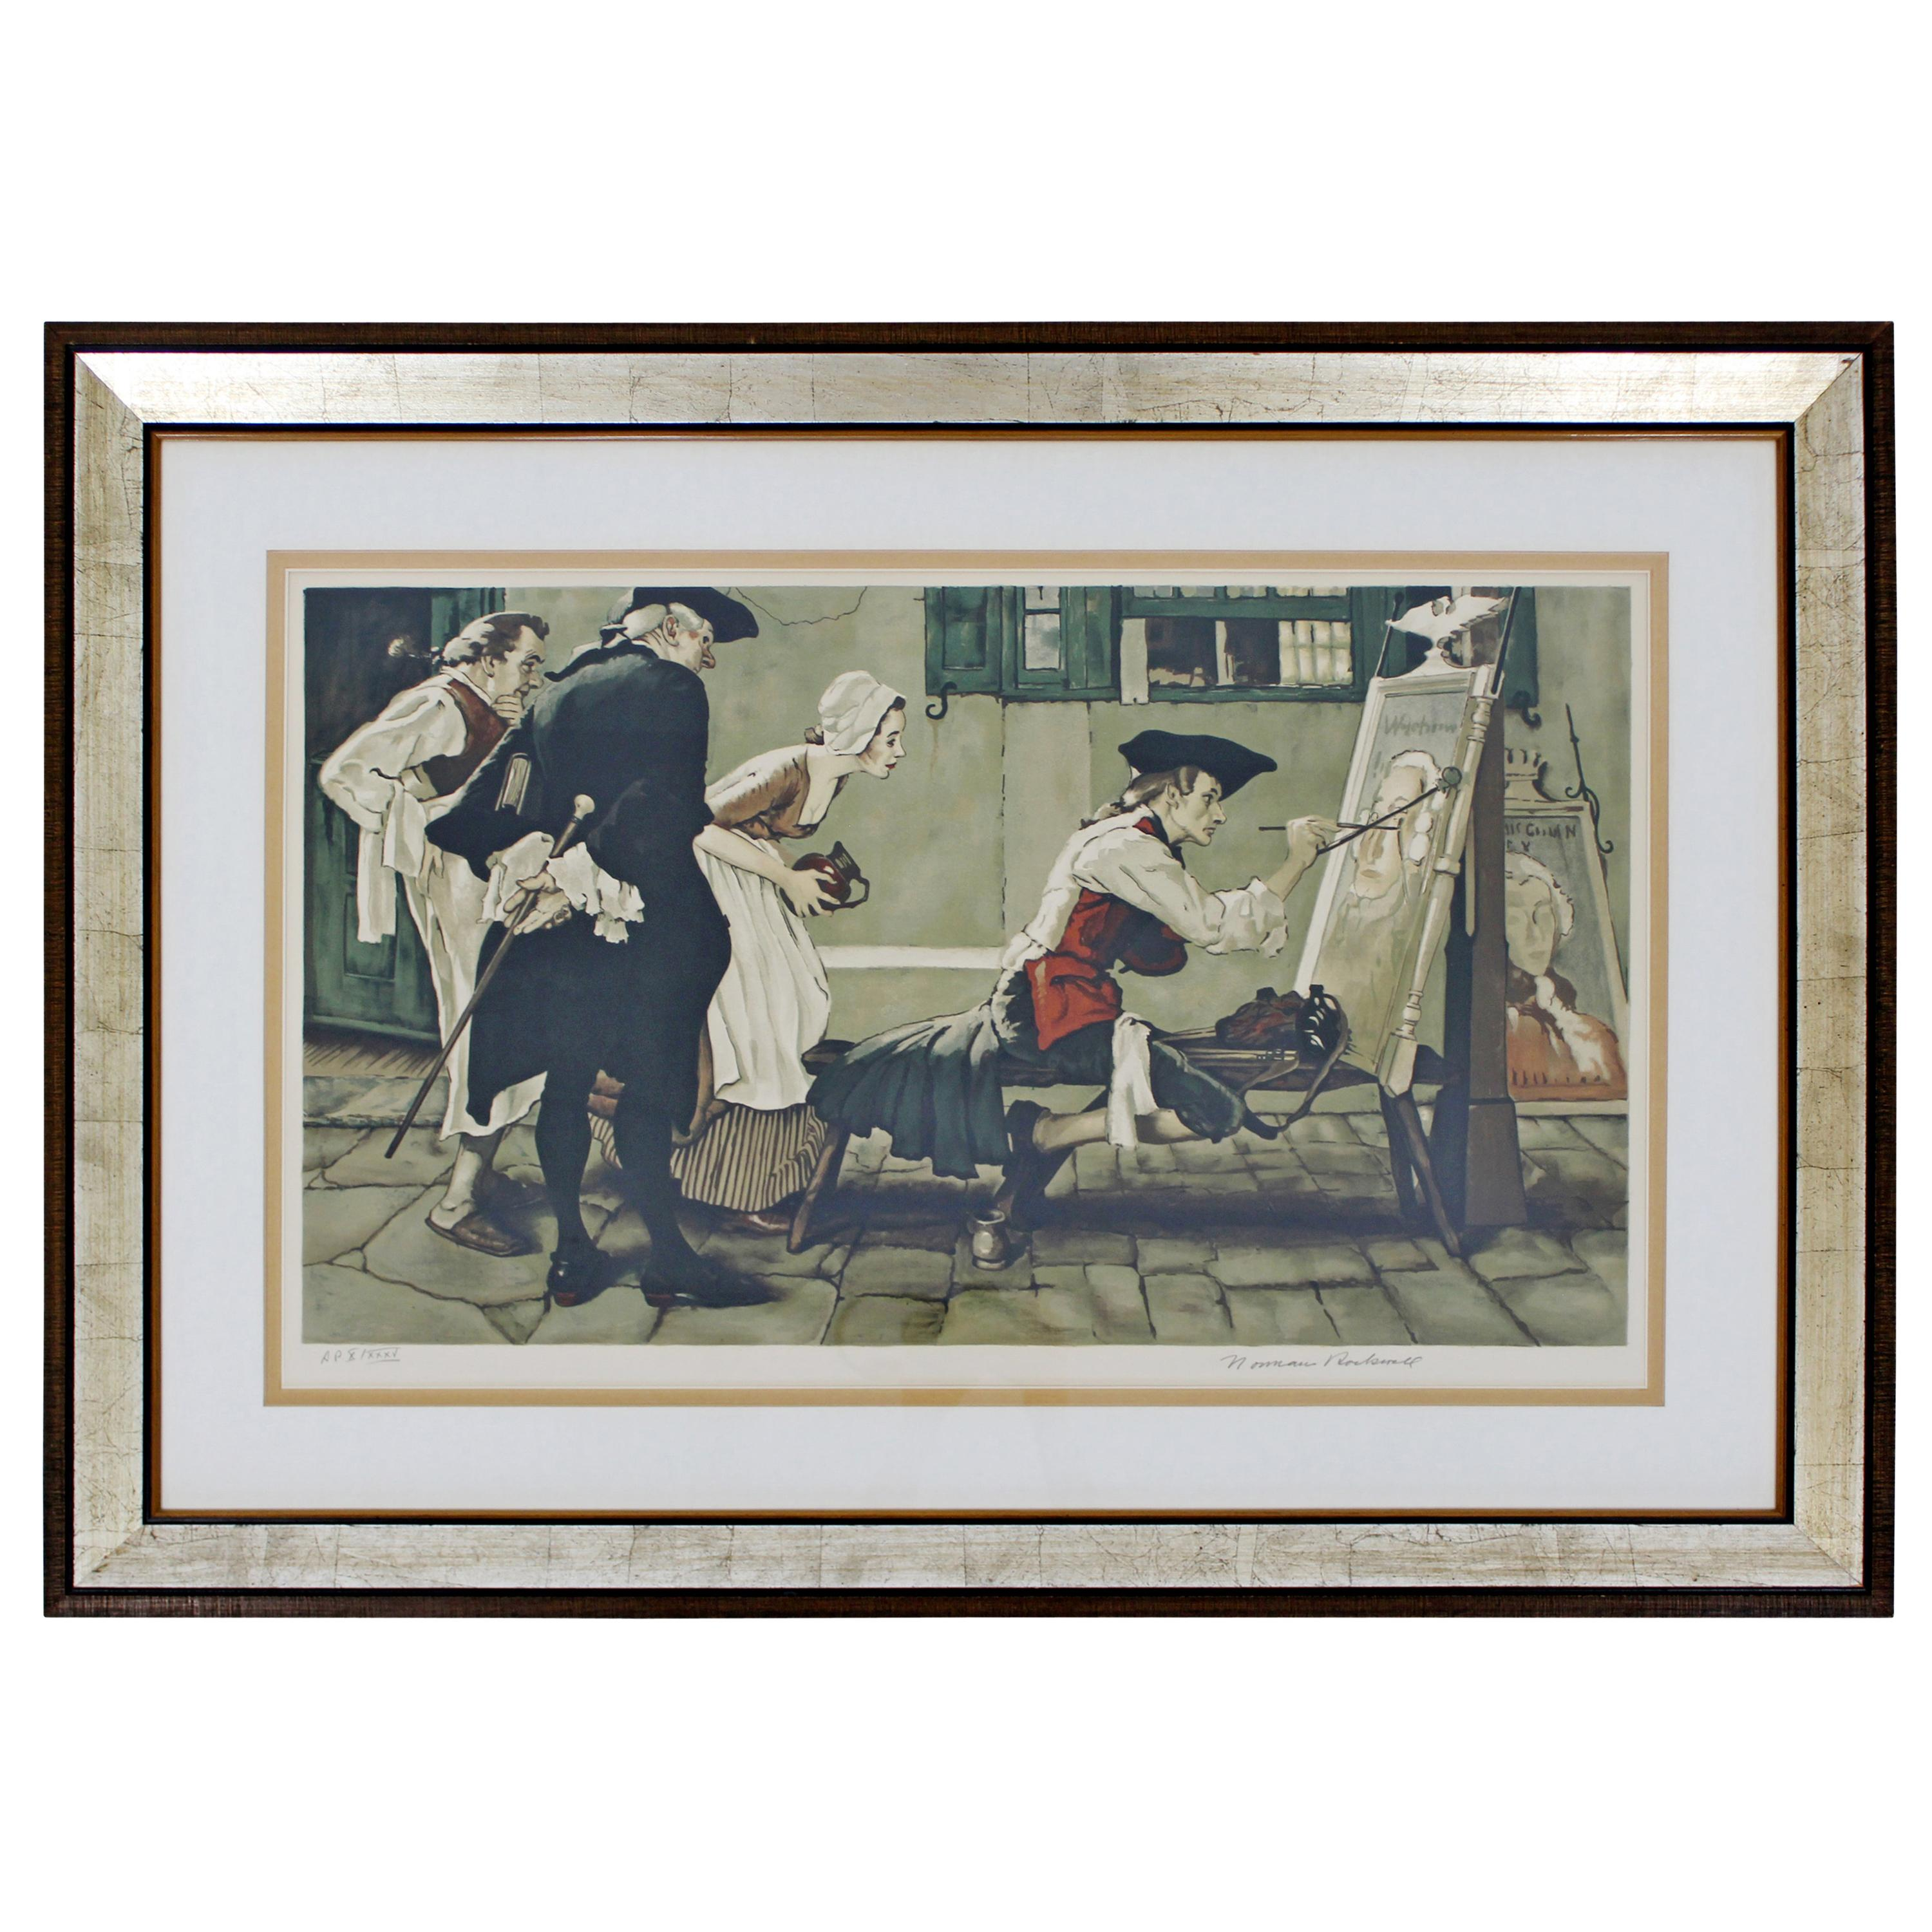 20th Century Framed Modern Illustration A.P. Litho Signed Norman Rockwell 1936